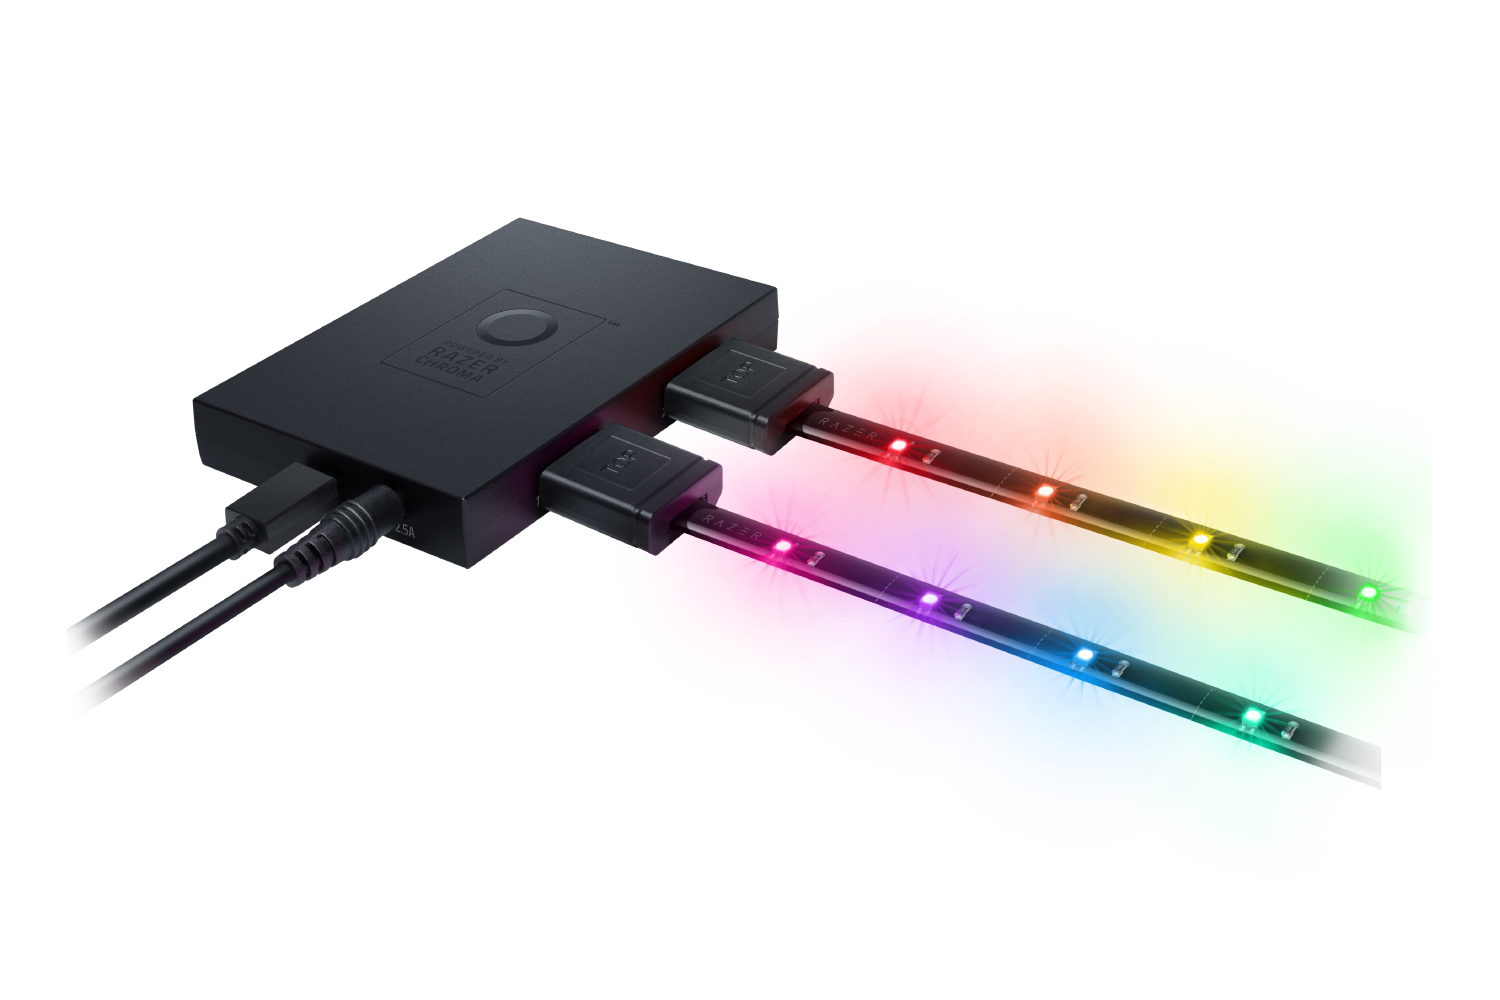 kit de desarrollo de hardware Razer Chroma